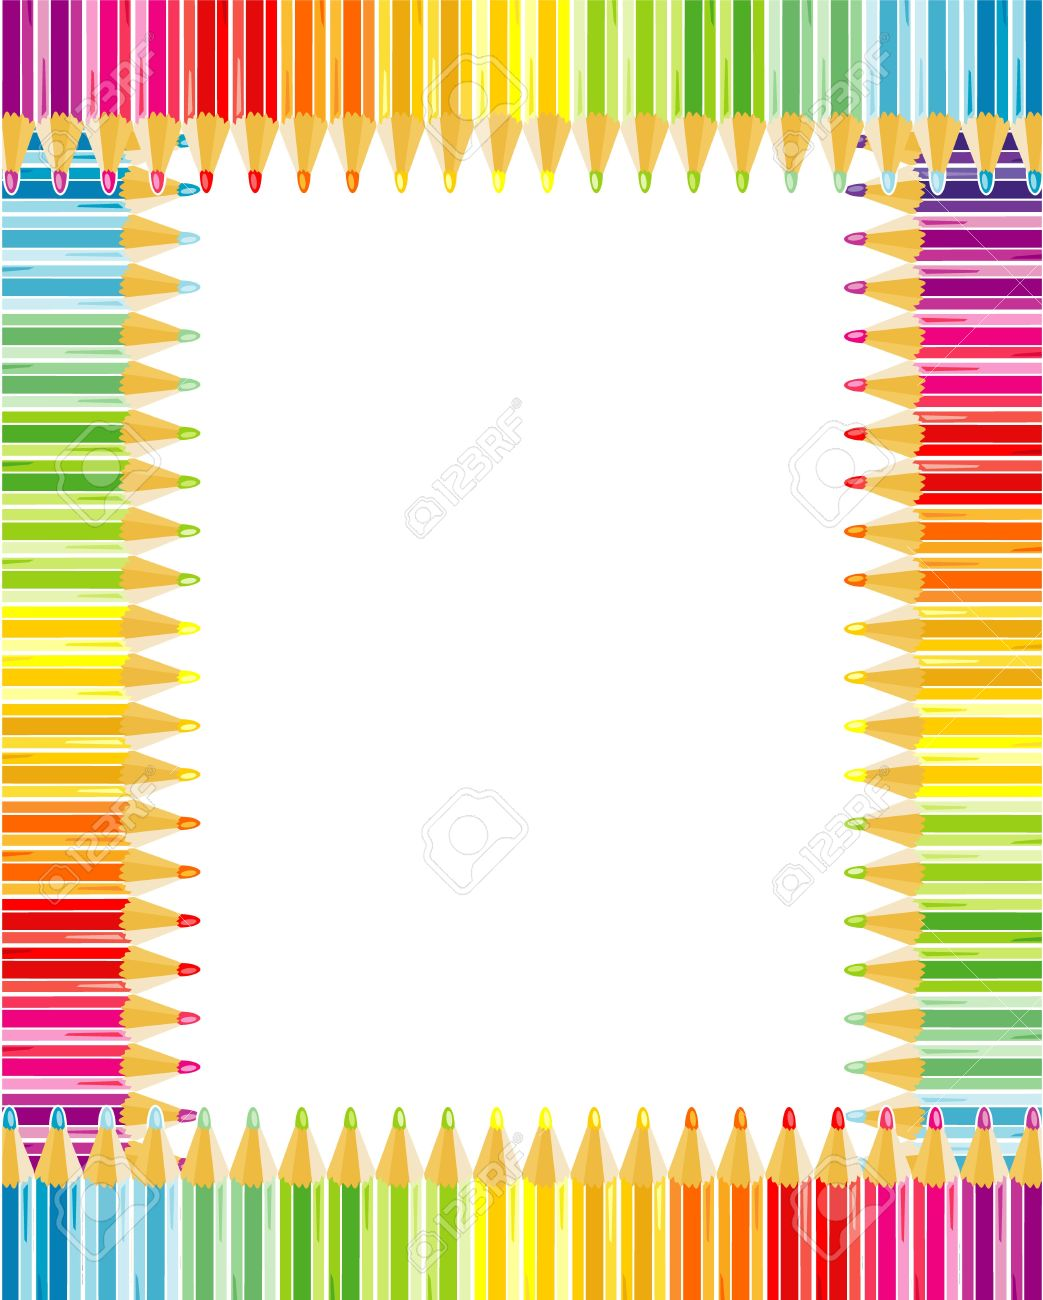 rainbow colored pencils frame or border stock vector 21874483